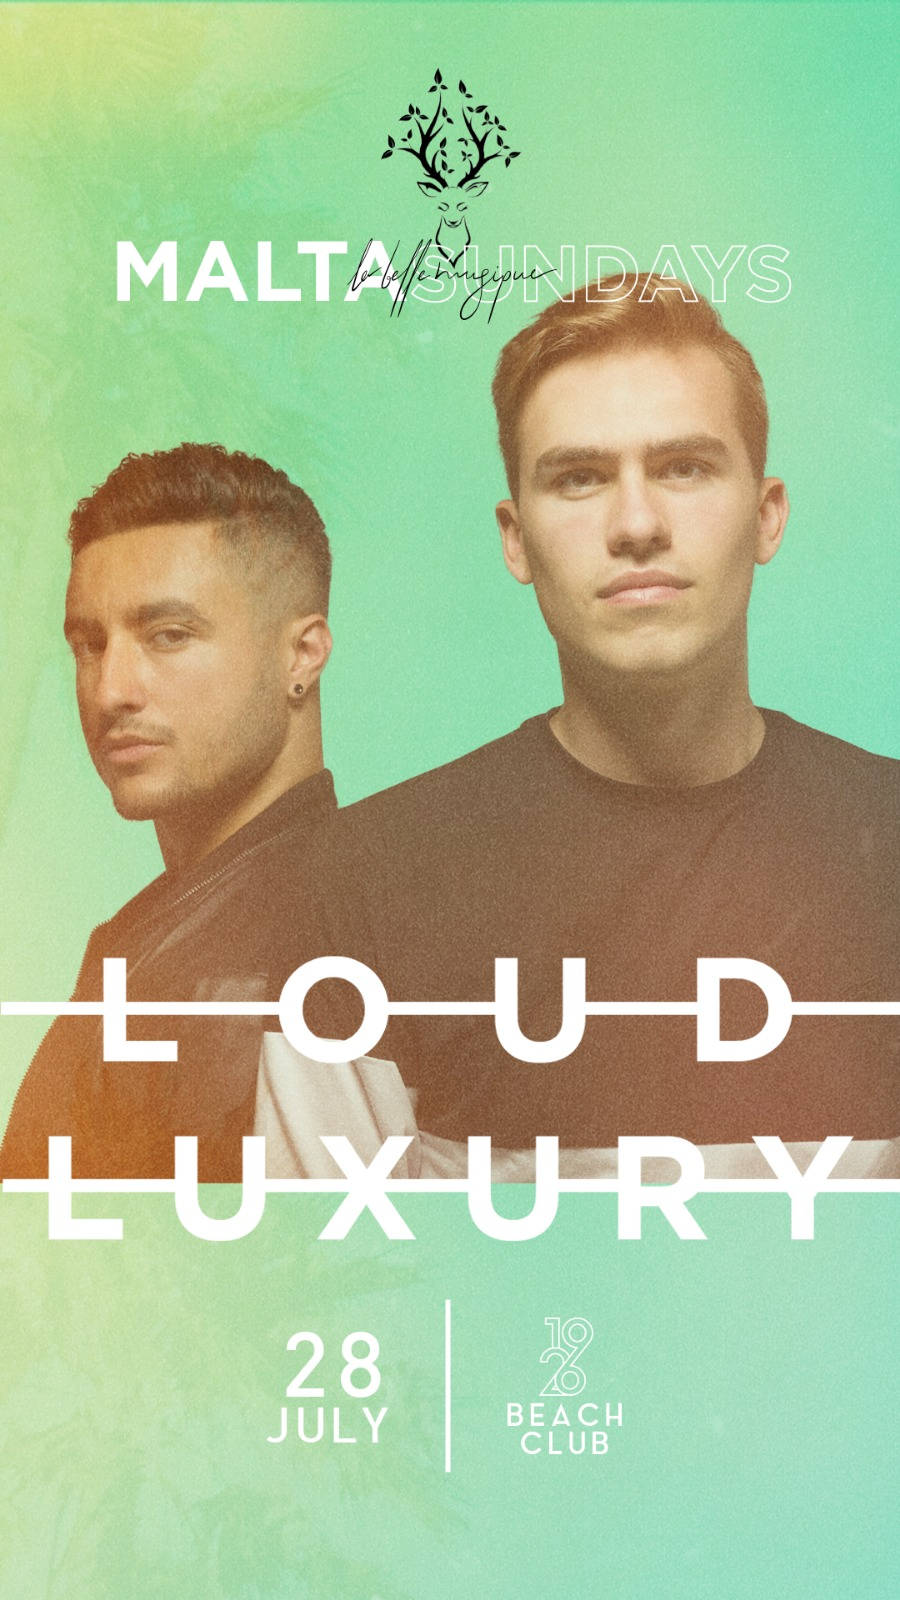 LA BELLE MUSIQUE MALTA SUNDAYS 2019 ft. LOUD LUXURY flyer